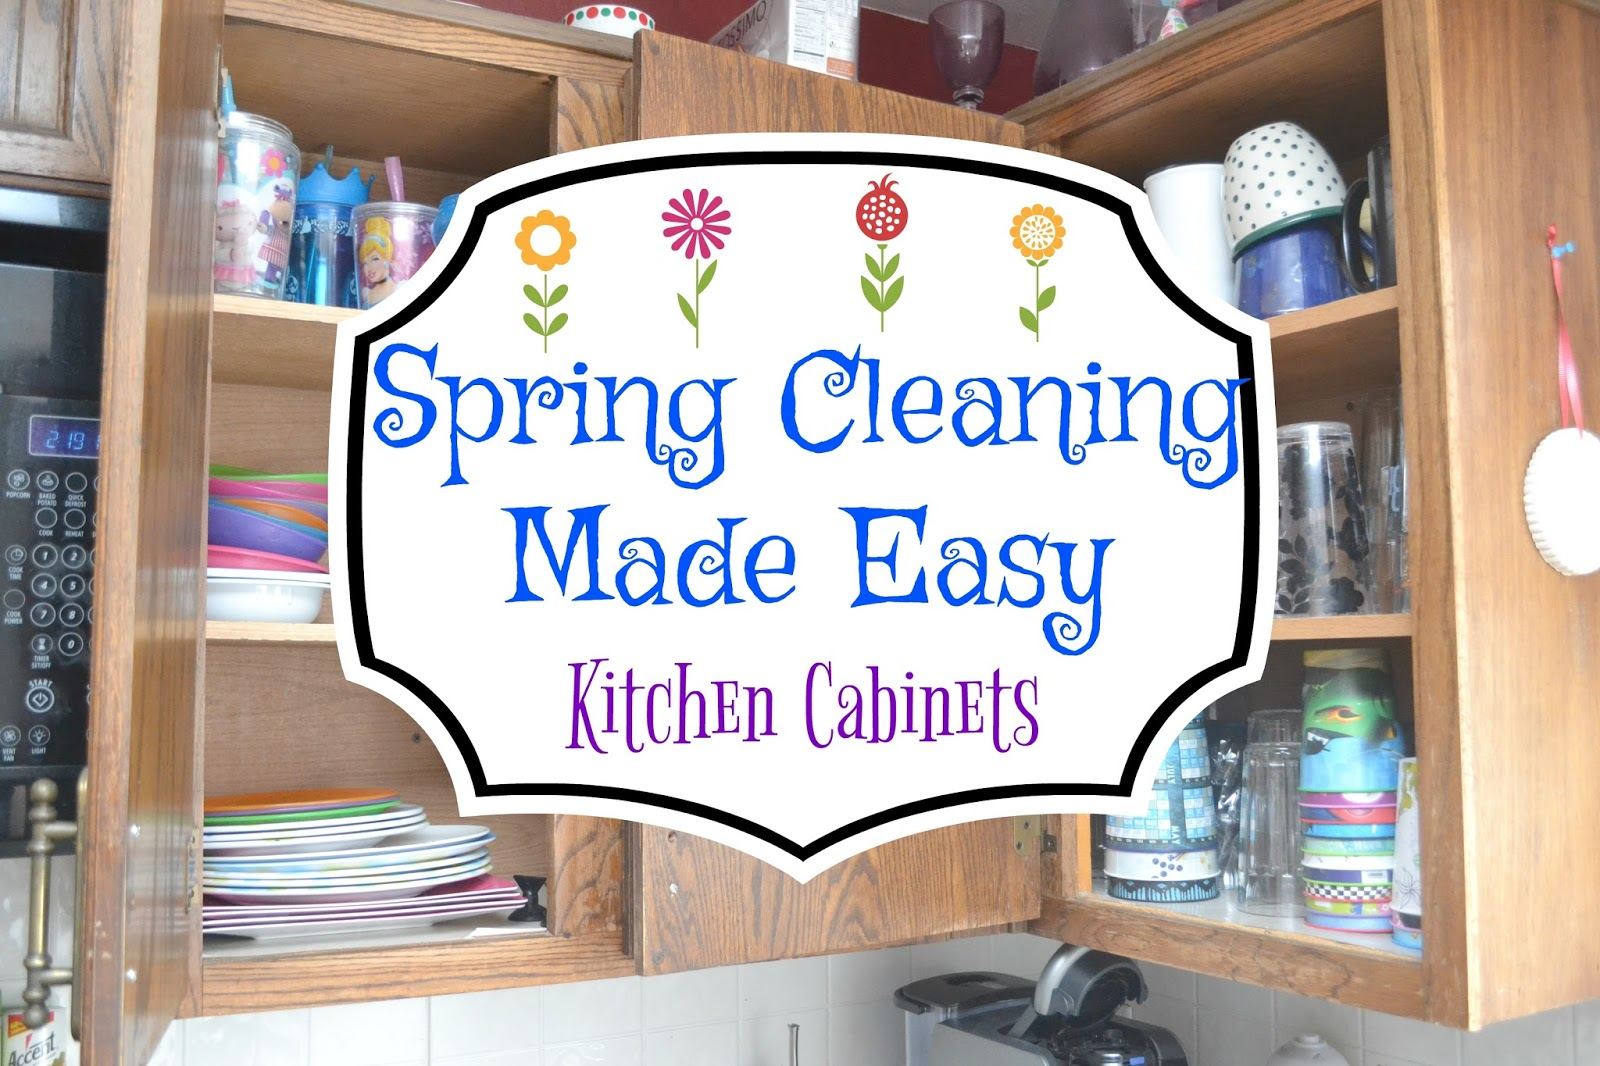 Spring cleaning kitchen cabinets - Kitchen Cabinets Spring Cleaning Made Easy Spring Cleaning Tips Easy Spring Cleaning